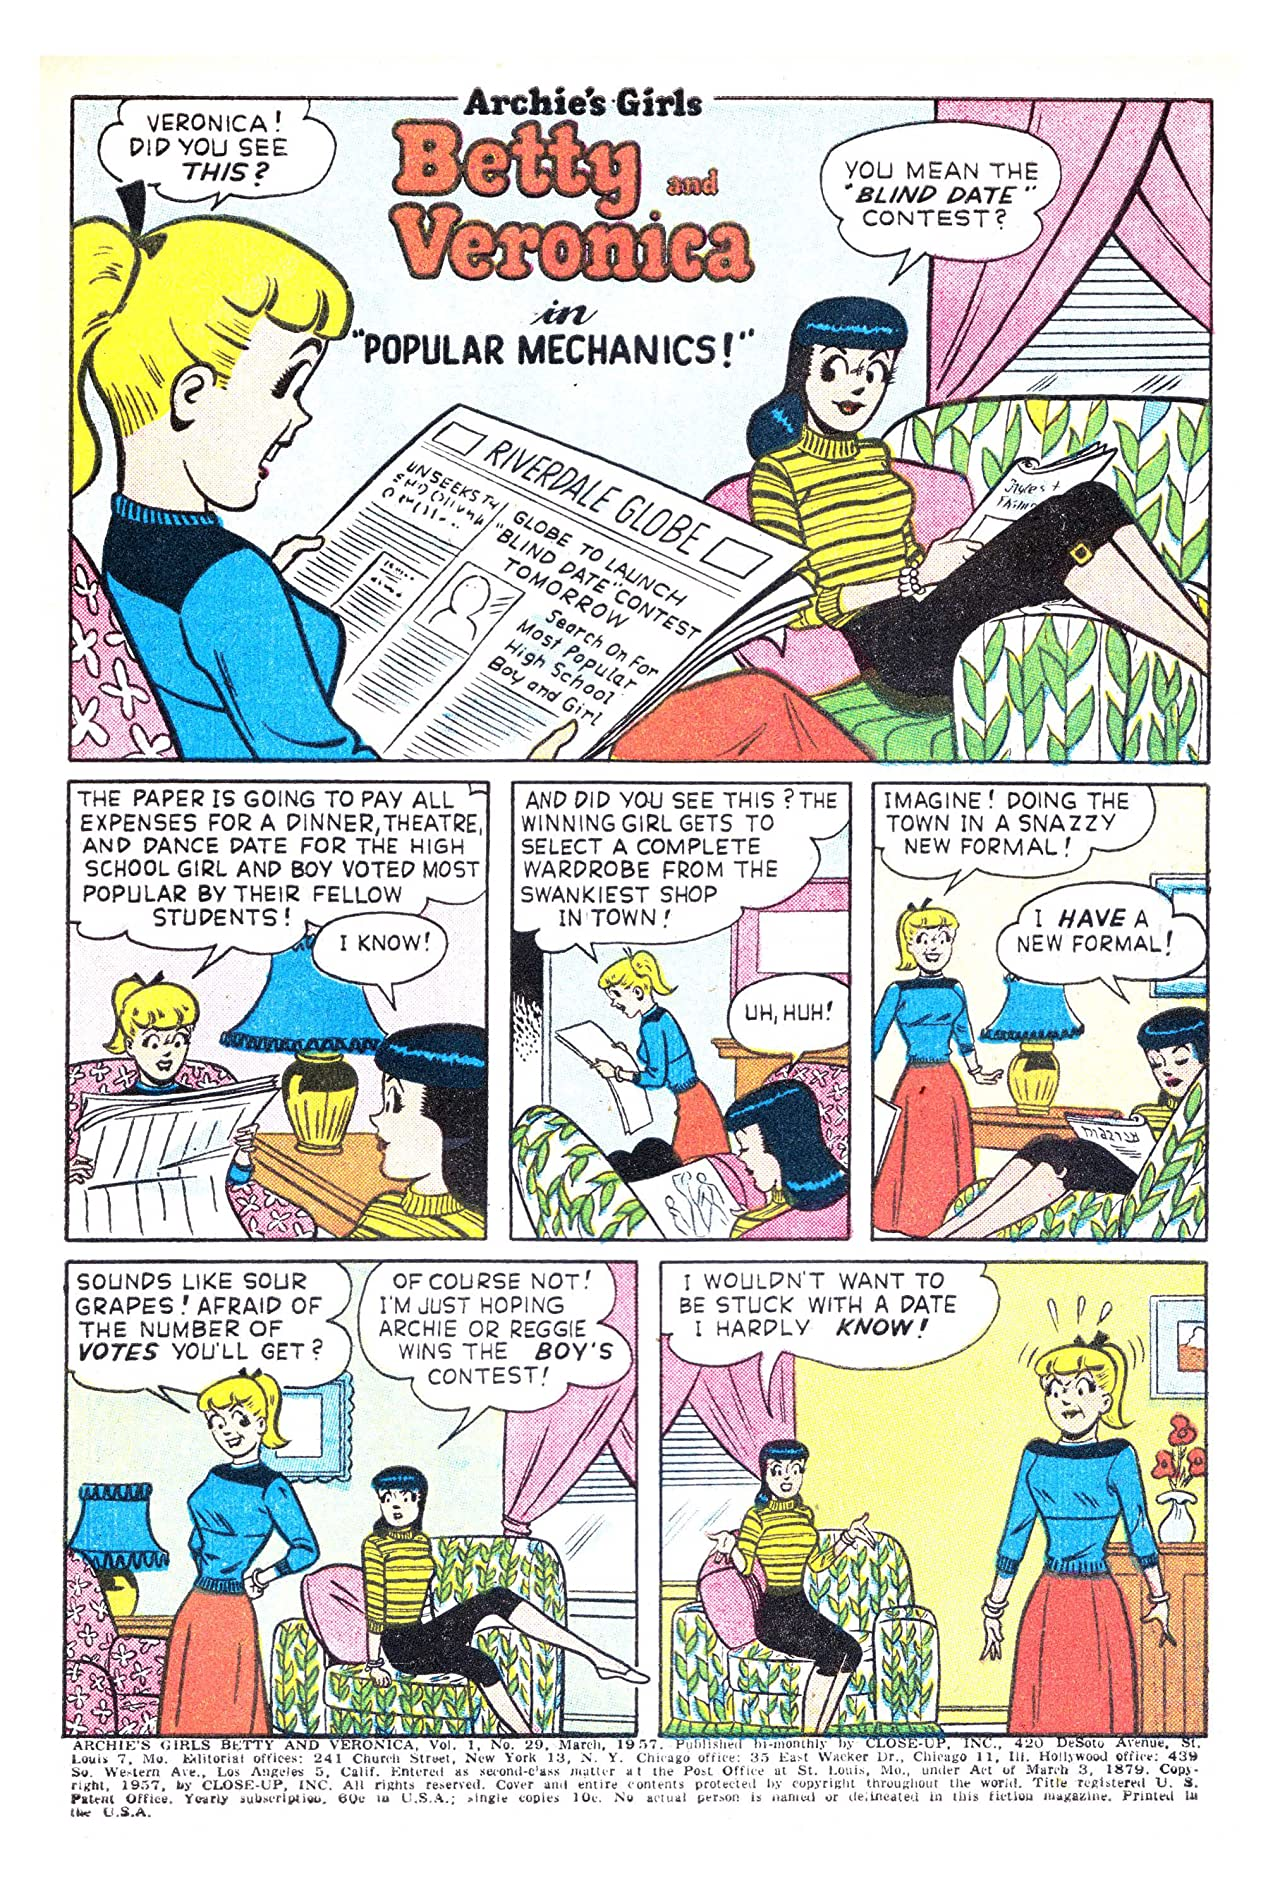 Archie's Girls Betty & Veronica No.29